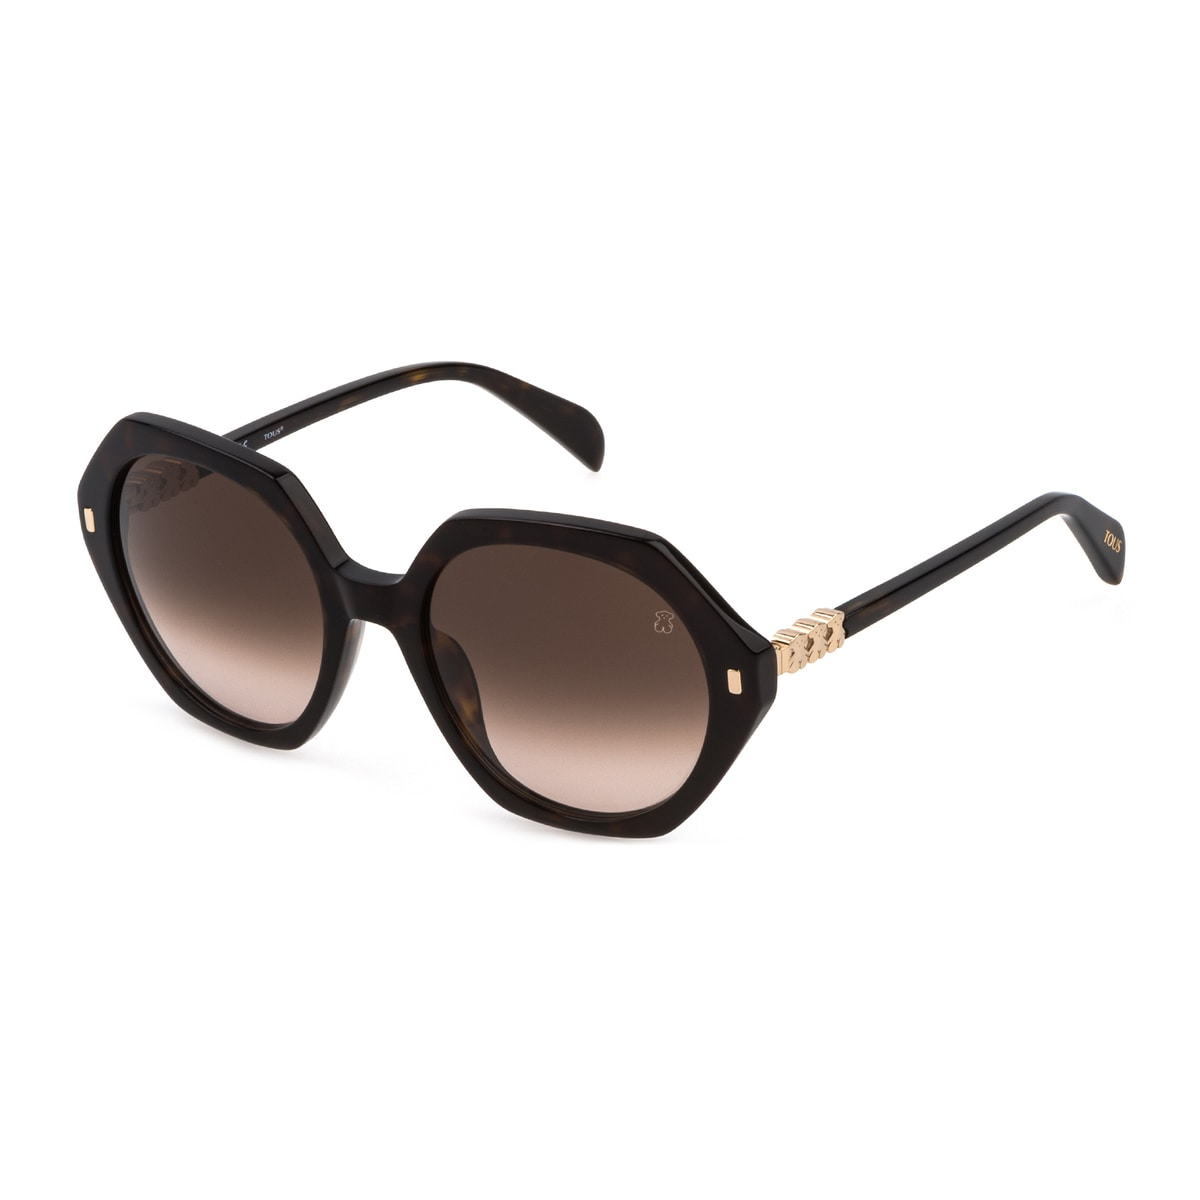 Bear Seventies Havana brown sunglasses